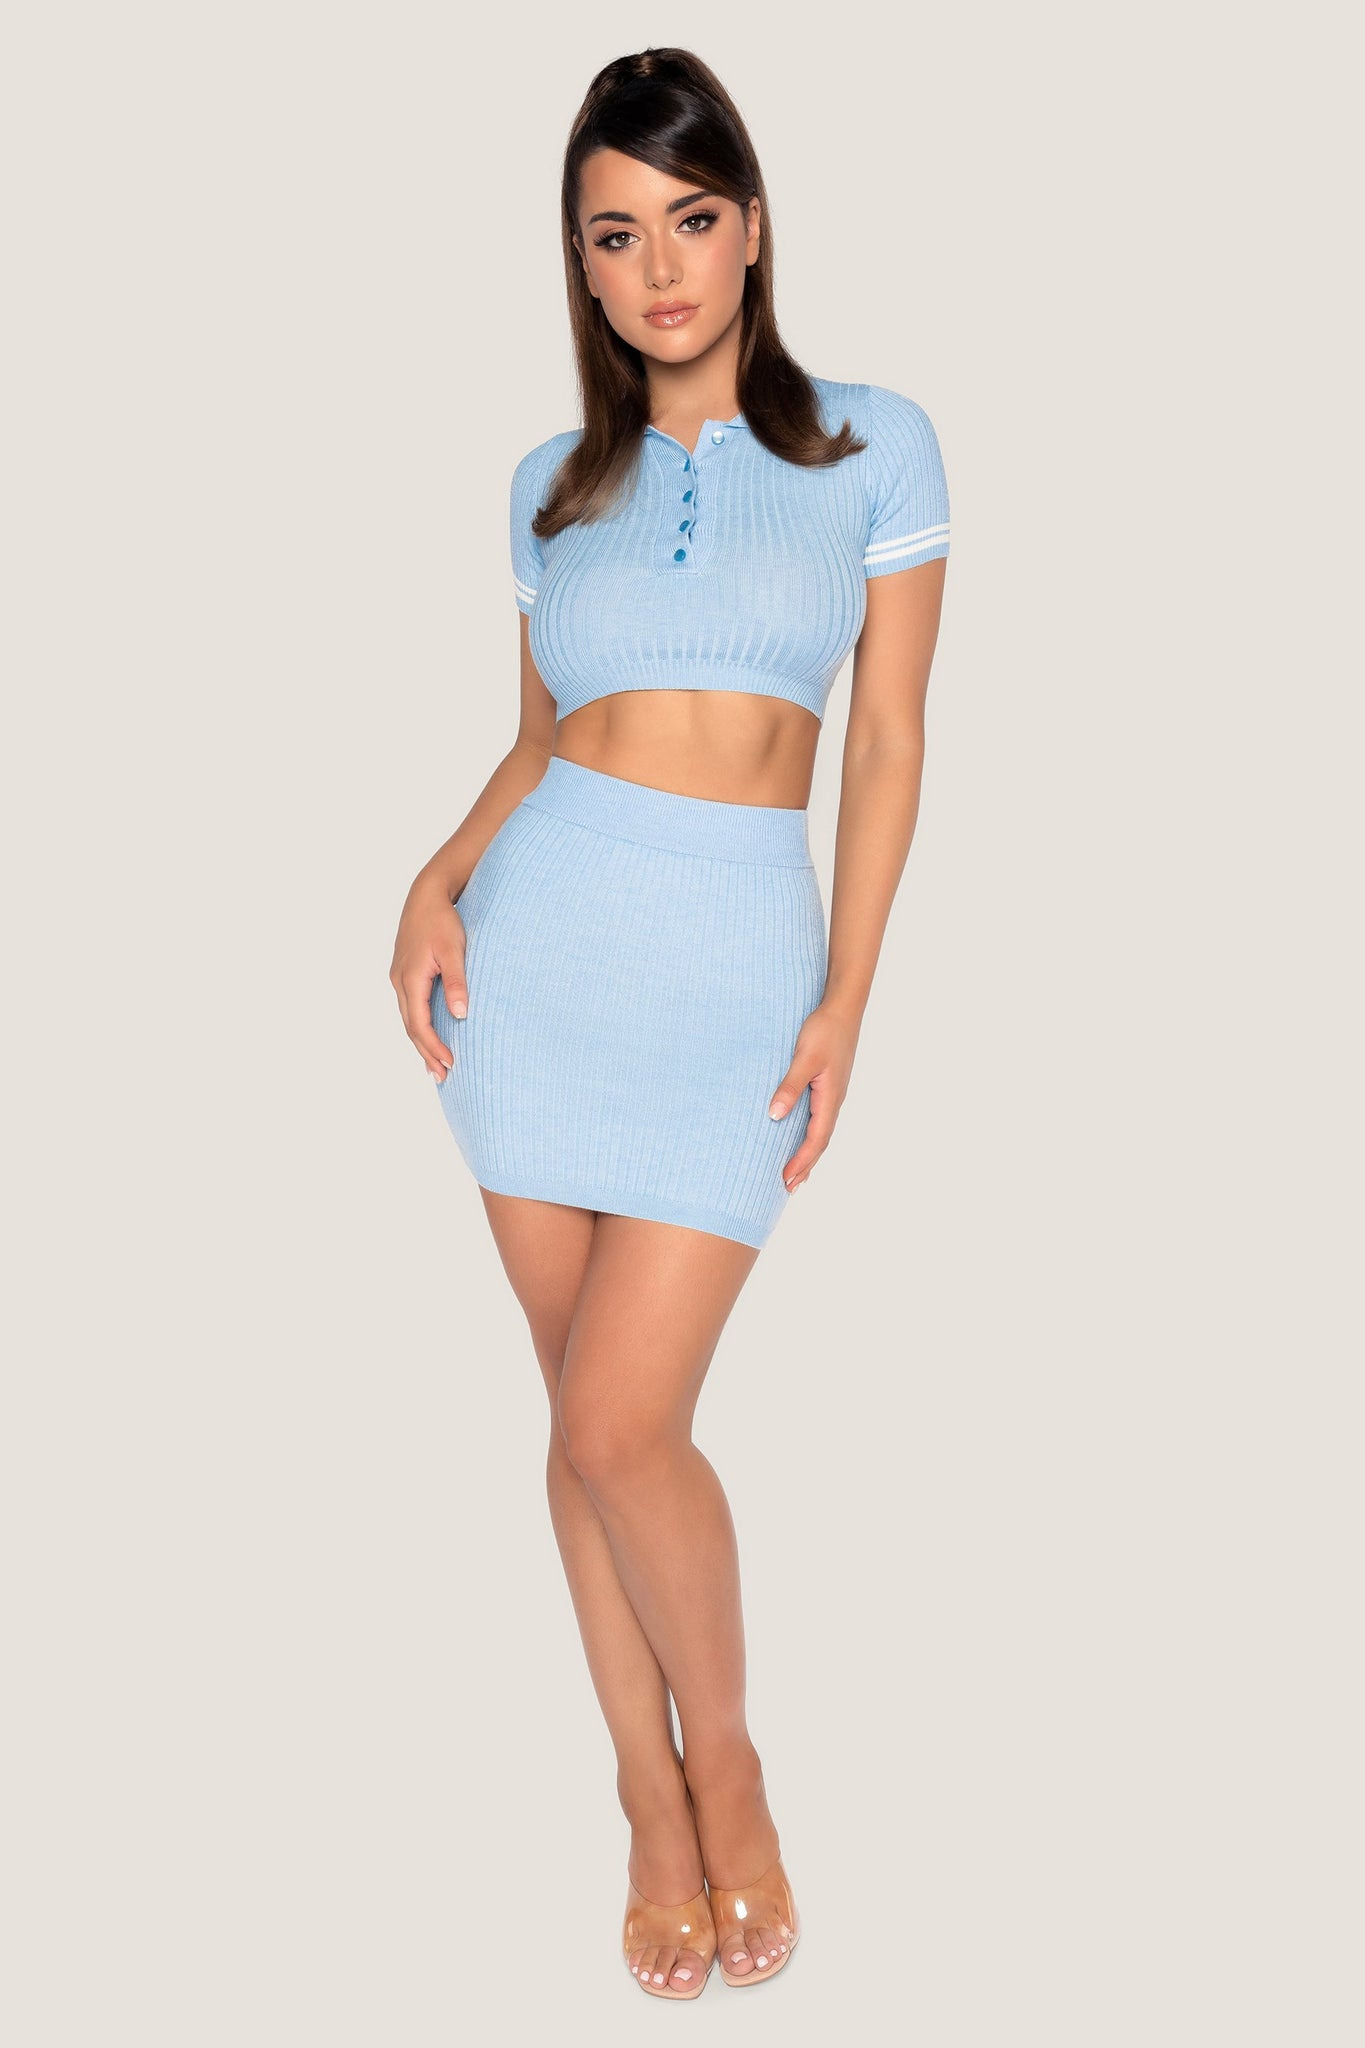 Cece Short Sleeve Cropped Polo Top - Baby Blue - MESHKI